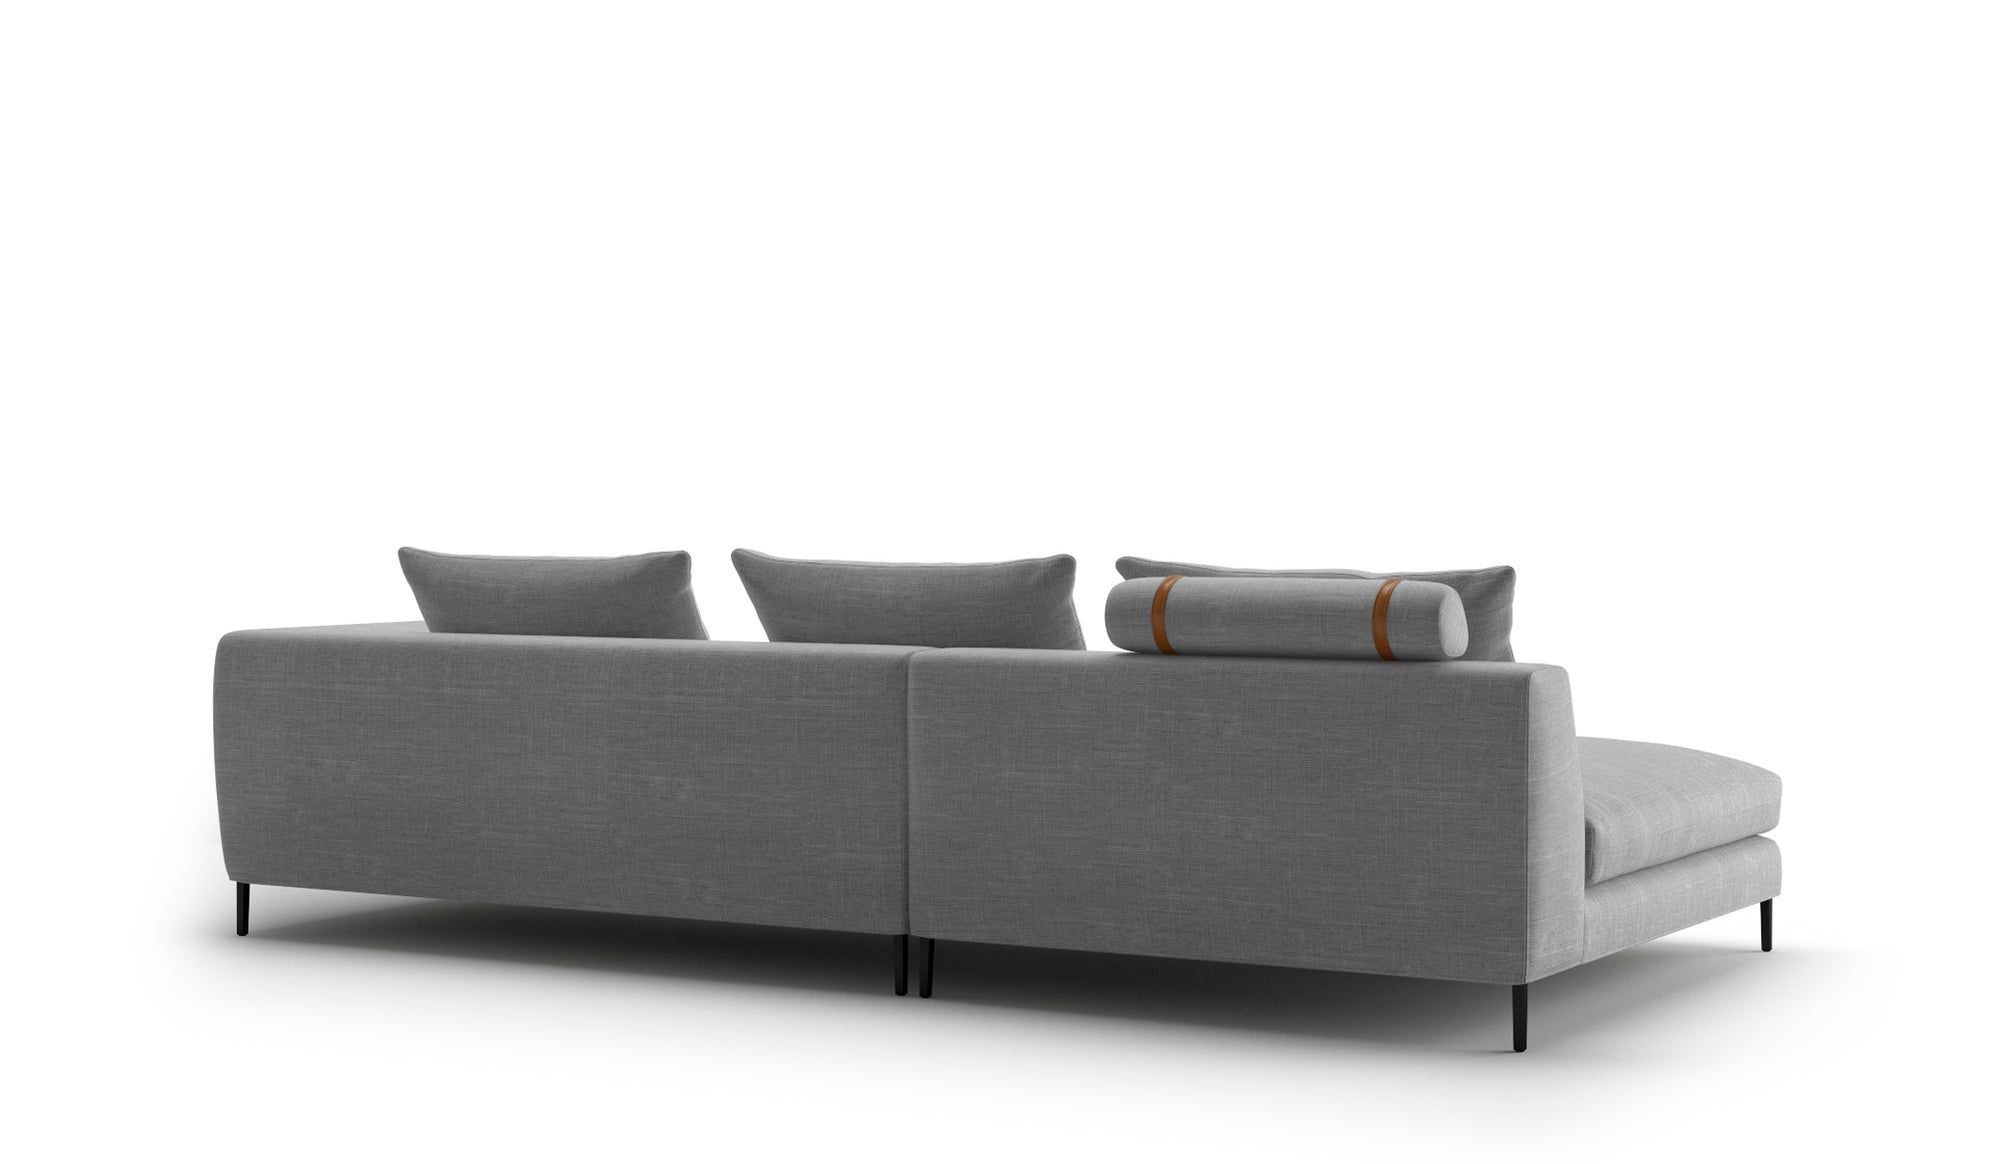 Peak Sofa | 3.5 Seater Left Chaise Diara Mist